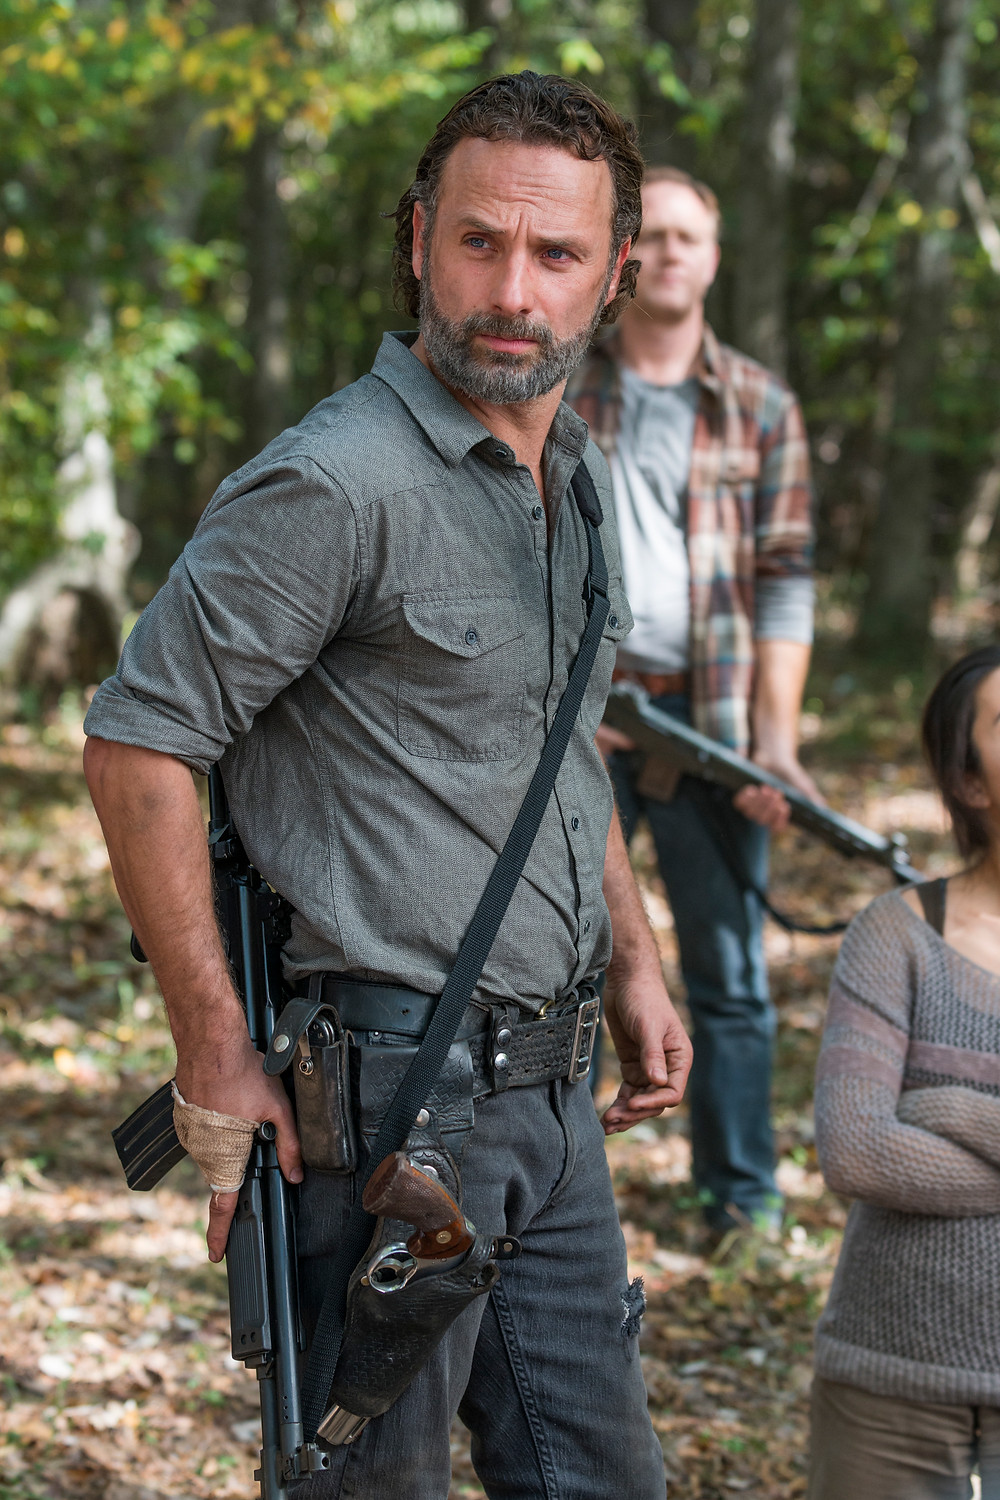 Andrew Lincoln (as Rick Grimes) is one of the most familiar faces in America today. Even with Zombies on screen, he commands attention. Photo credit: Gene Page/AMC